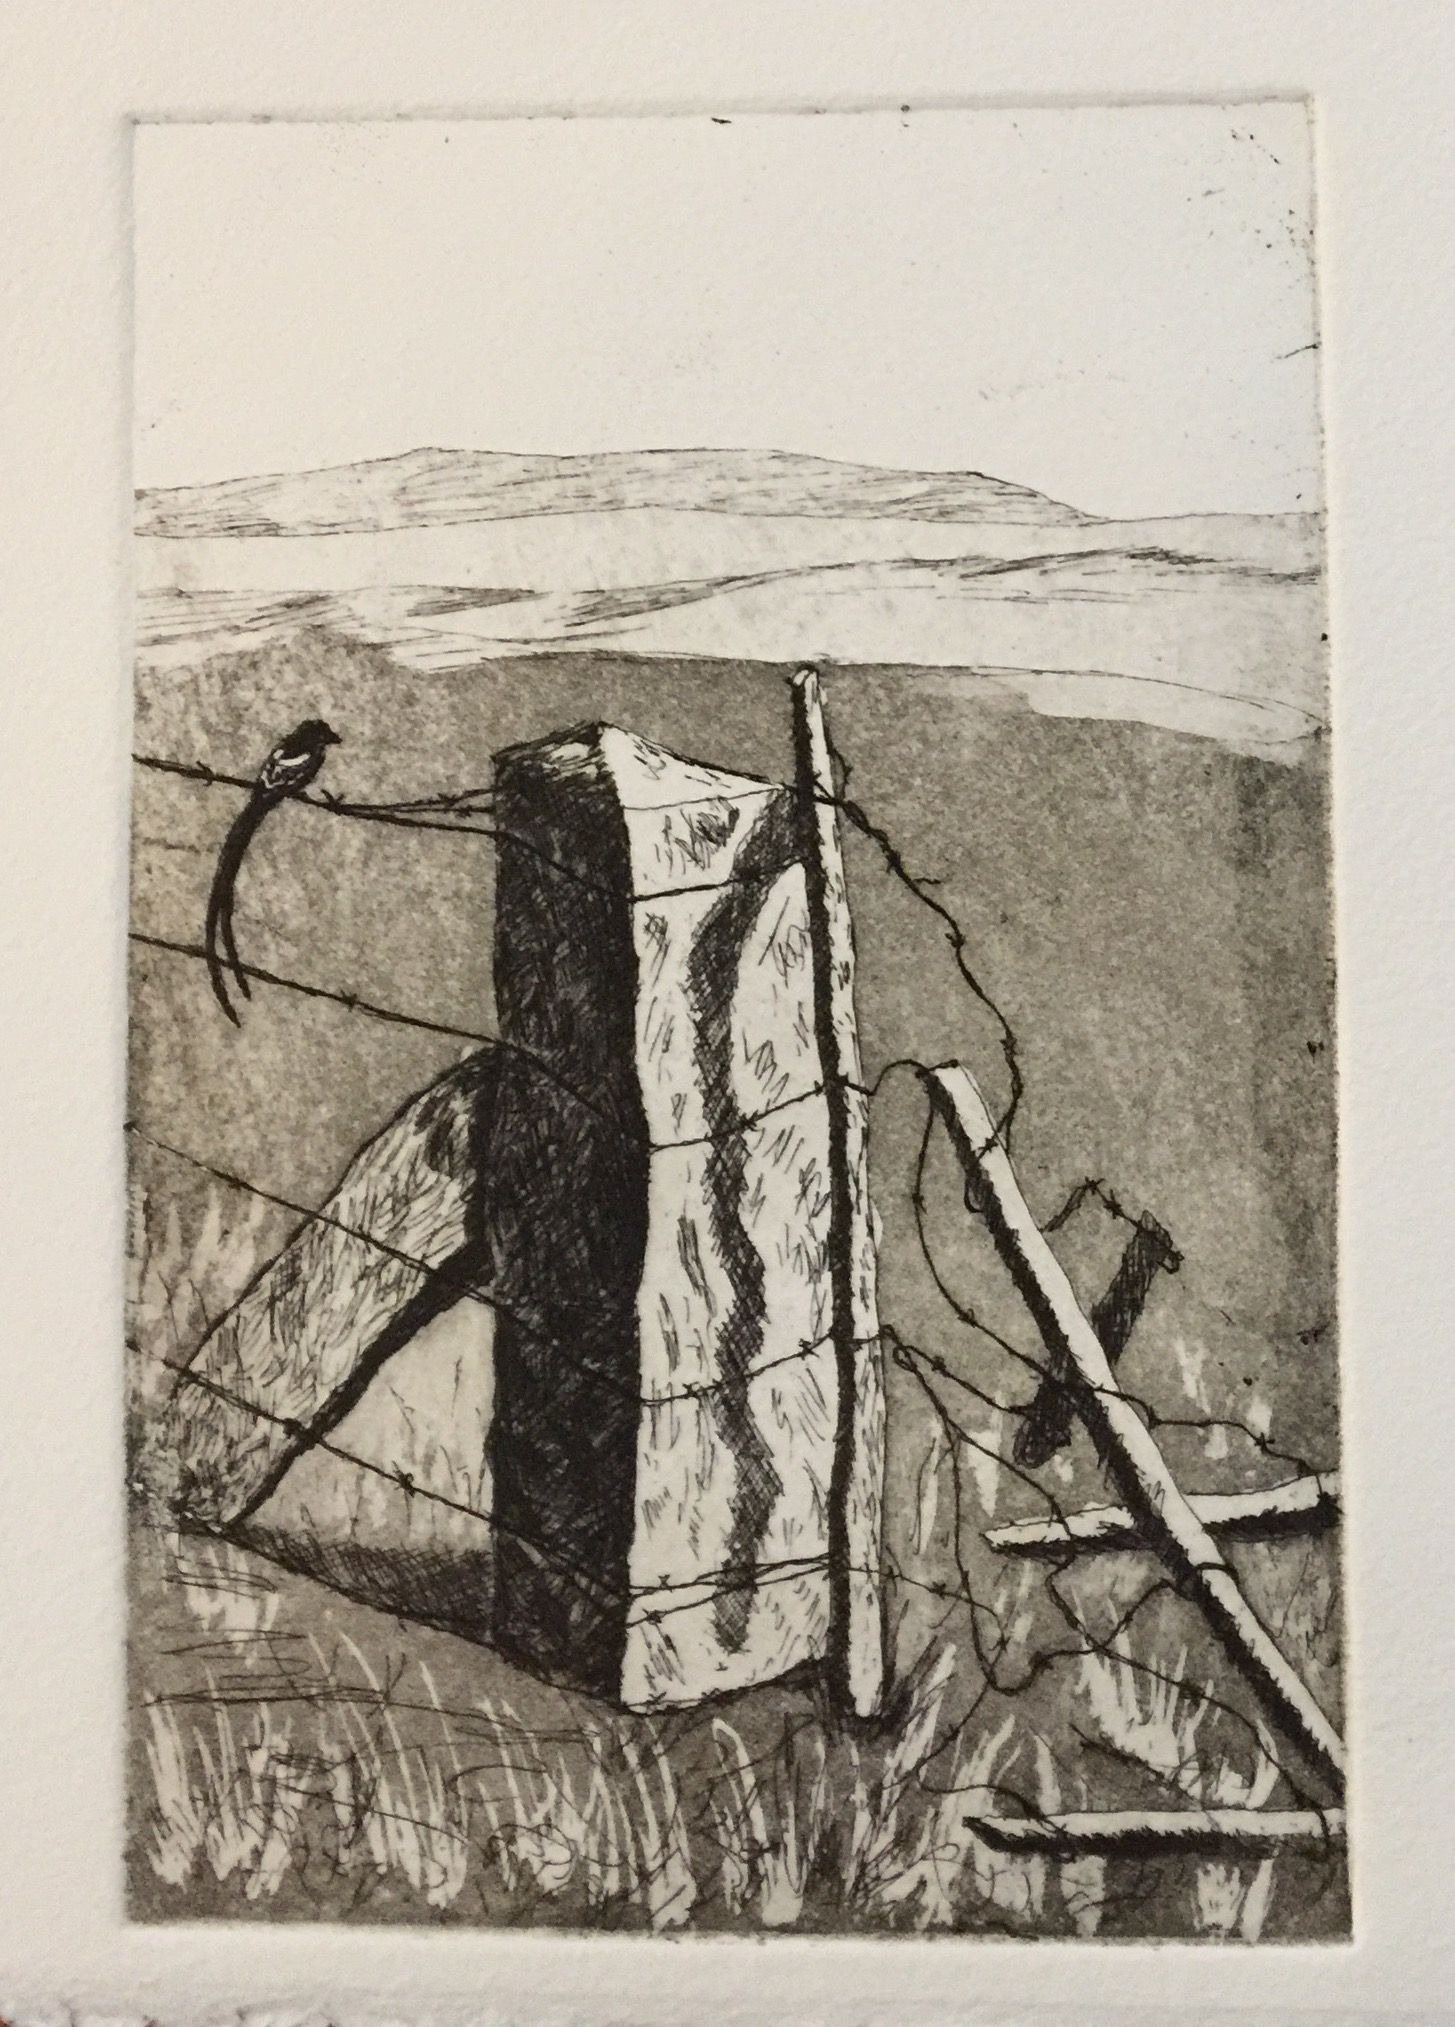 Copper Plate Hard Ground Etching With Aquatint Intaglio Printing Art Printmaking Prints